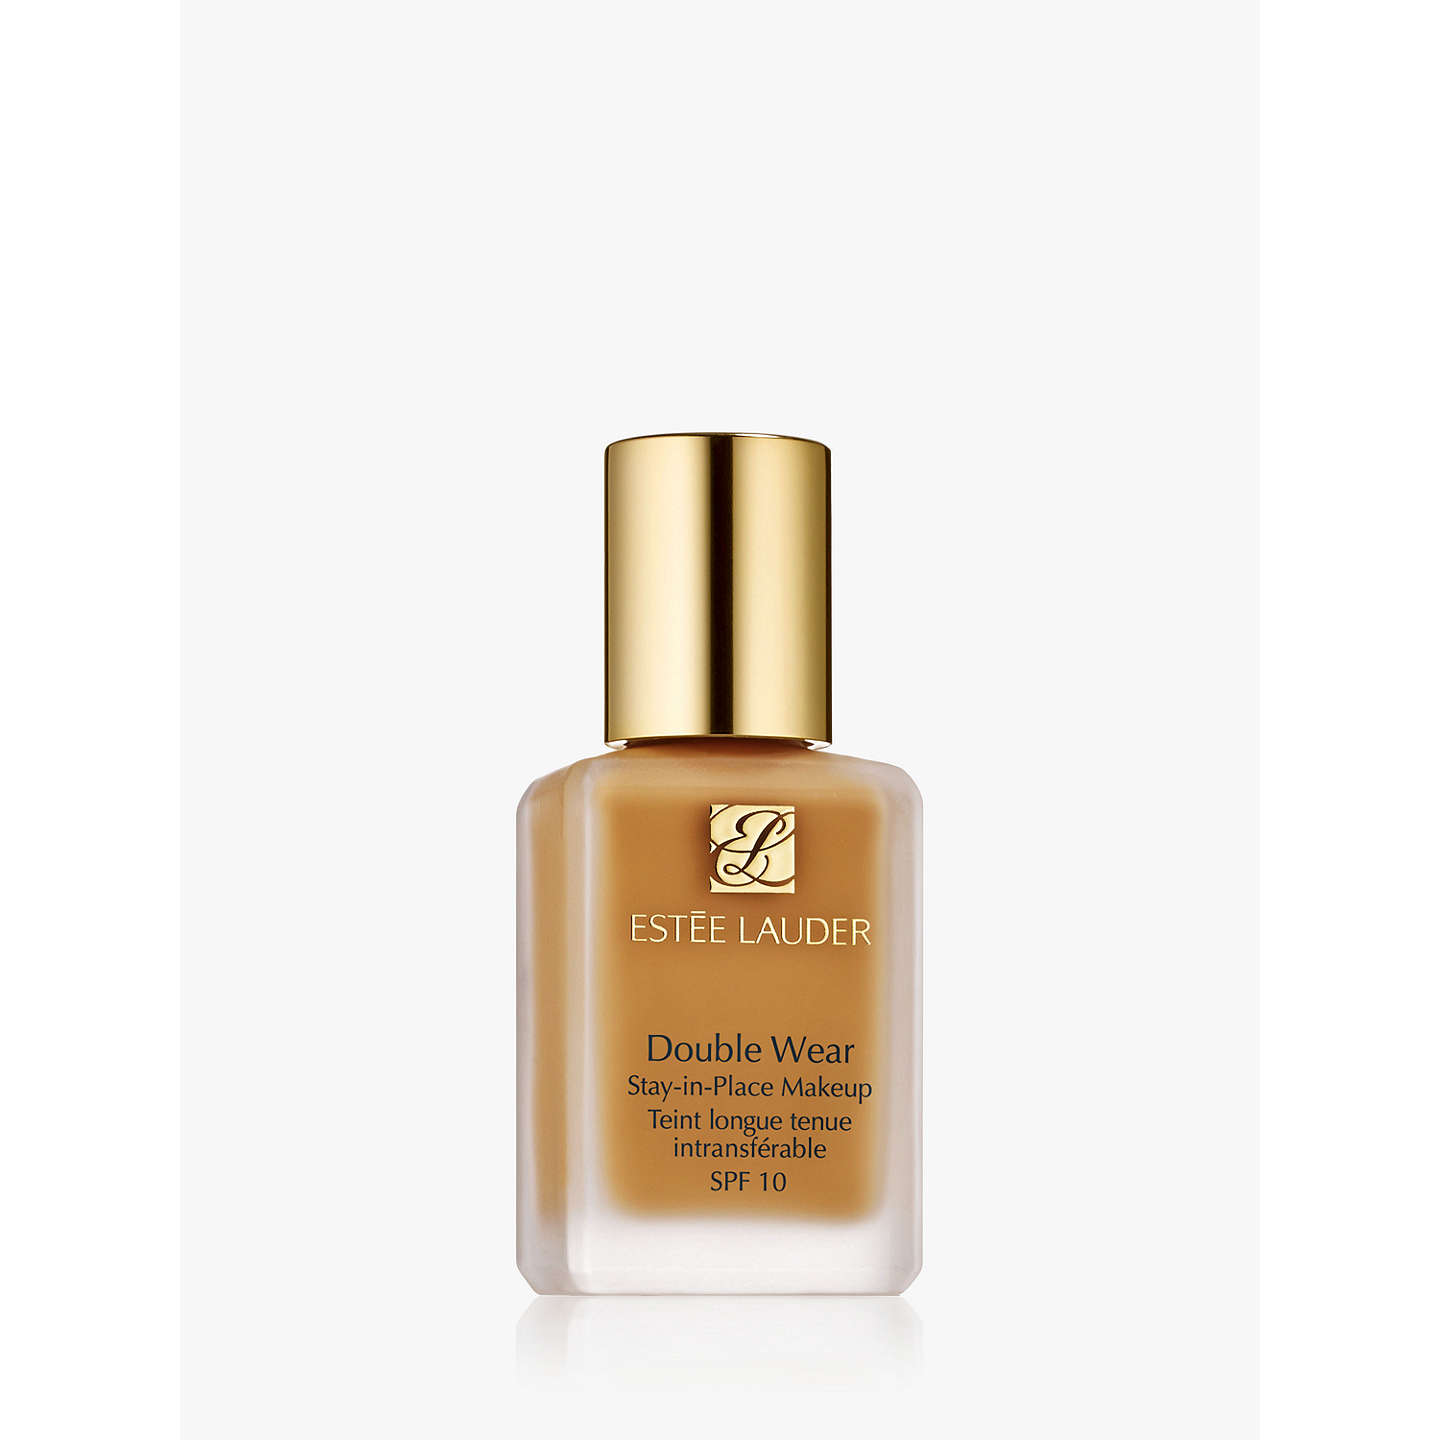 BuyEstée Lauder Double Wear Stay-In-Place Foundation Makeup SPF10, 3W0 Warm Creme Online at johnlewis.com